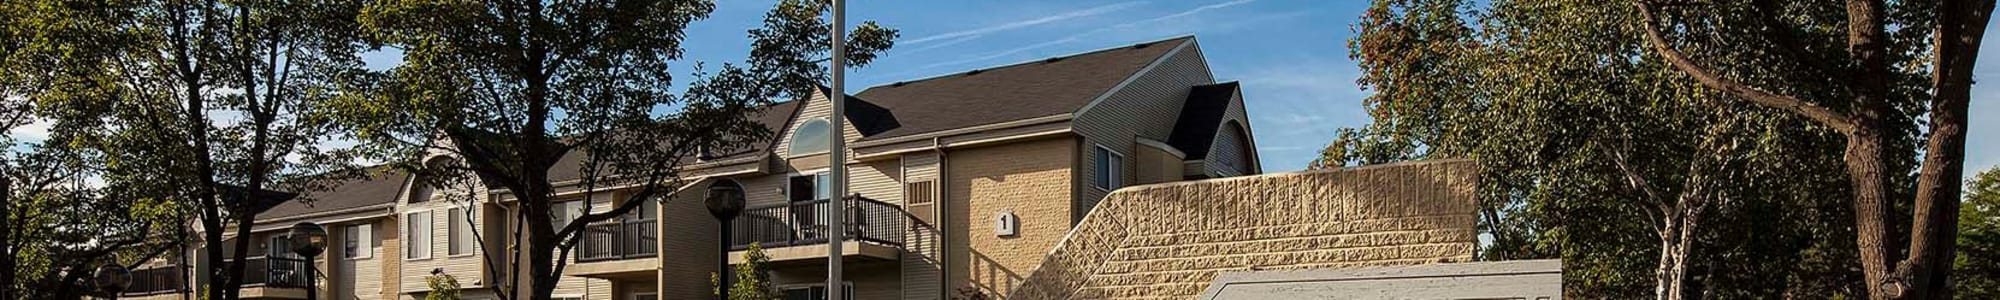 Apartments in Auburn Hills